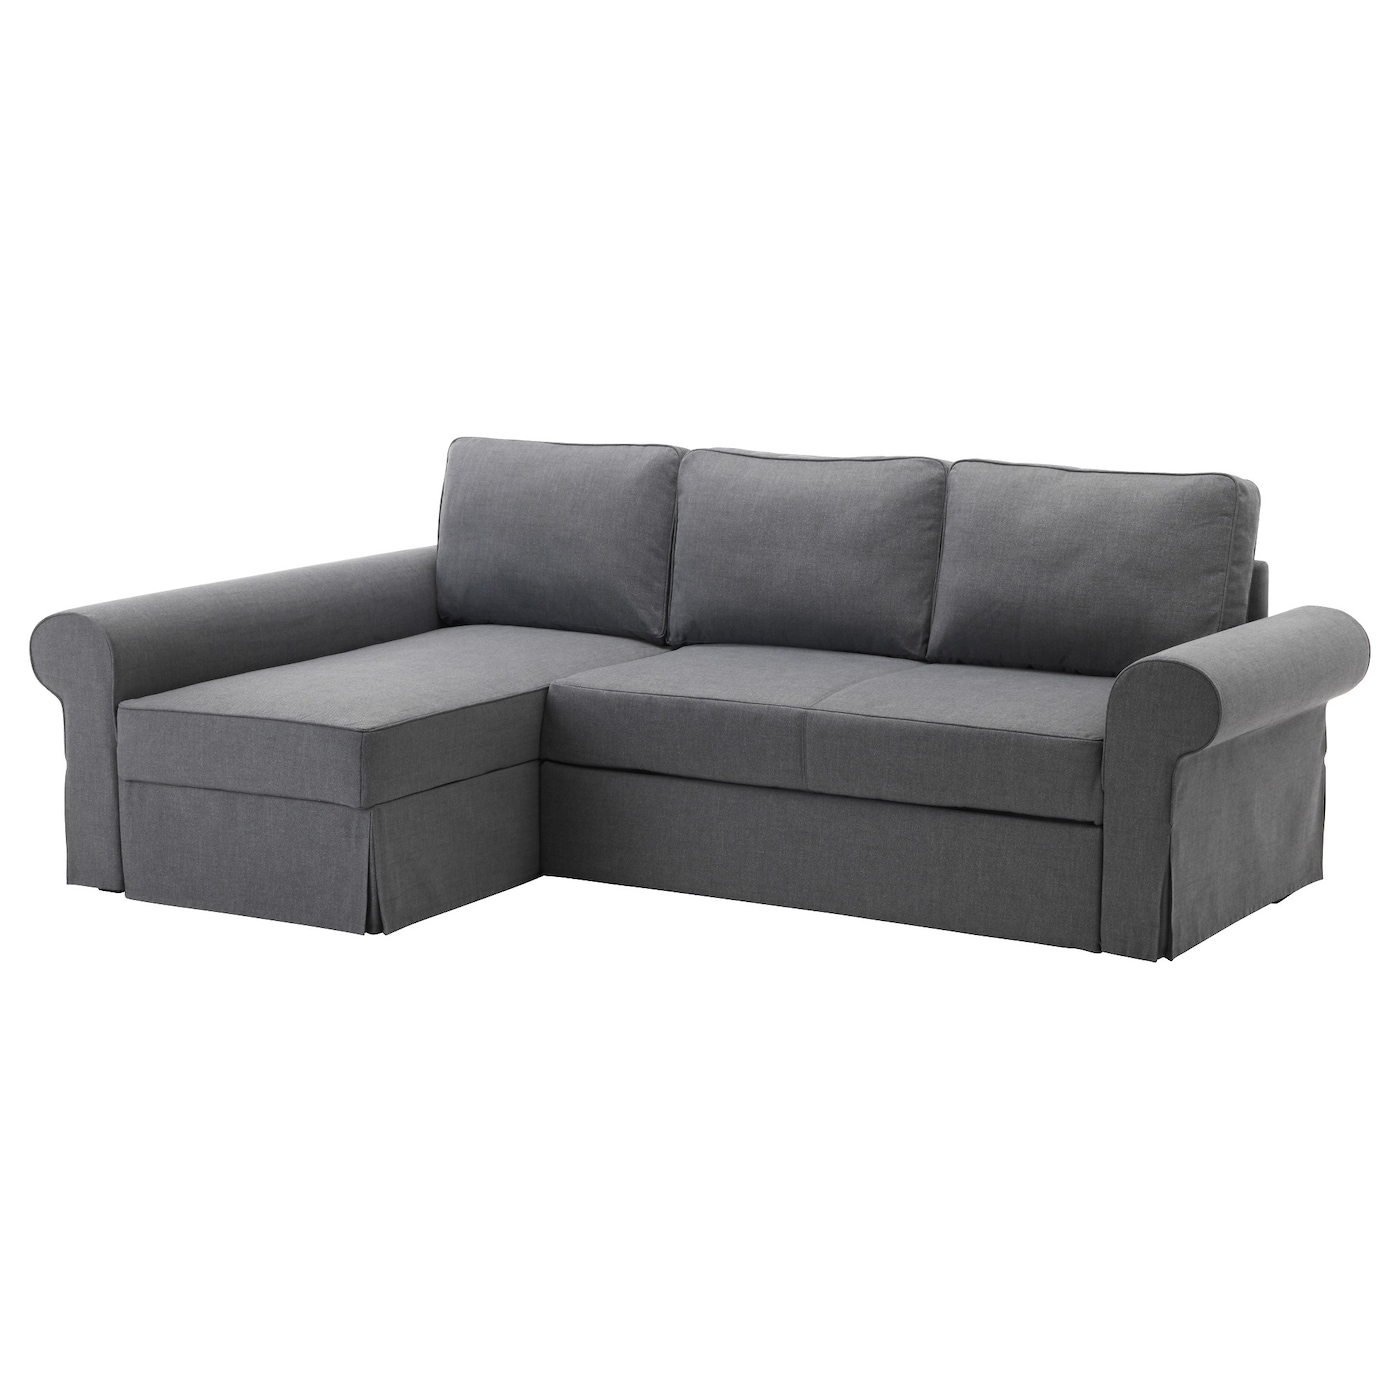 backabro sofa bed with chaise longue nordvalla dark grey ikea. Black Bedroom Furniture Sets. Home Design Ideas